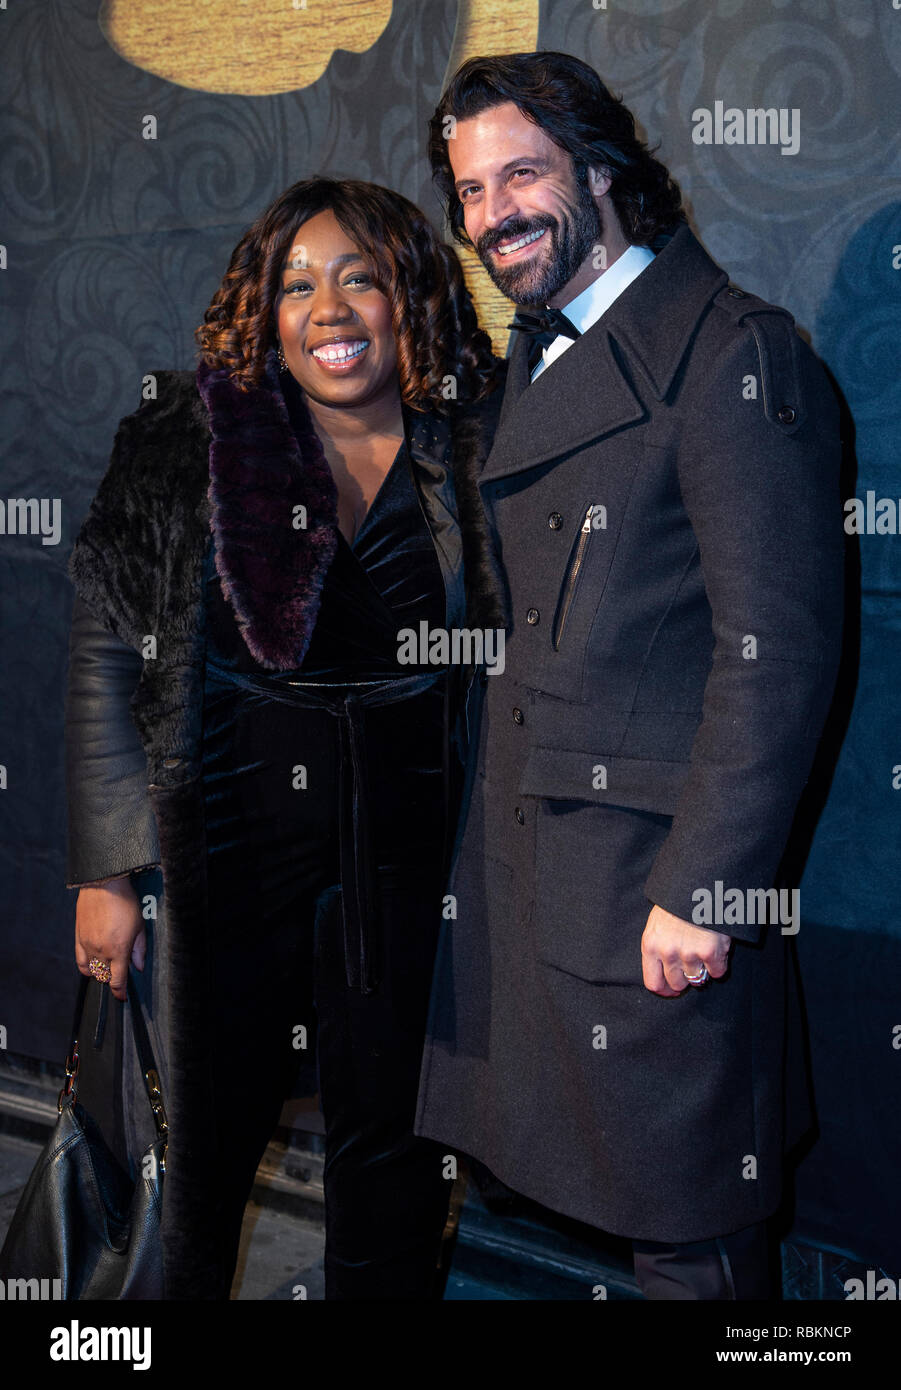 London, UK. 10th Jan 2019. Chizzy Akudolu and Christian Vit attend the 2019 'Gold Movie Awards' at Regent Street Cinema on January 10, 2019 in London, England Credit: Gary Mitchell, GMP Media/Alamy Live News Stock Photo